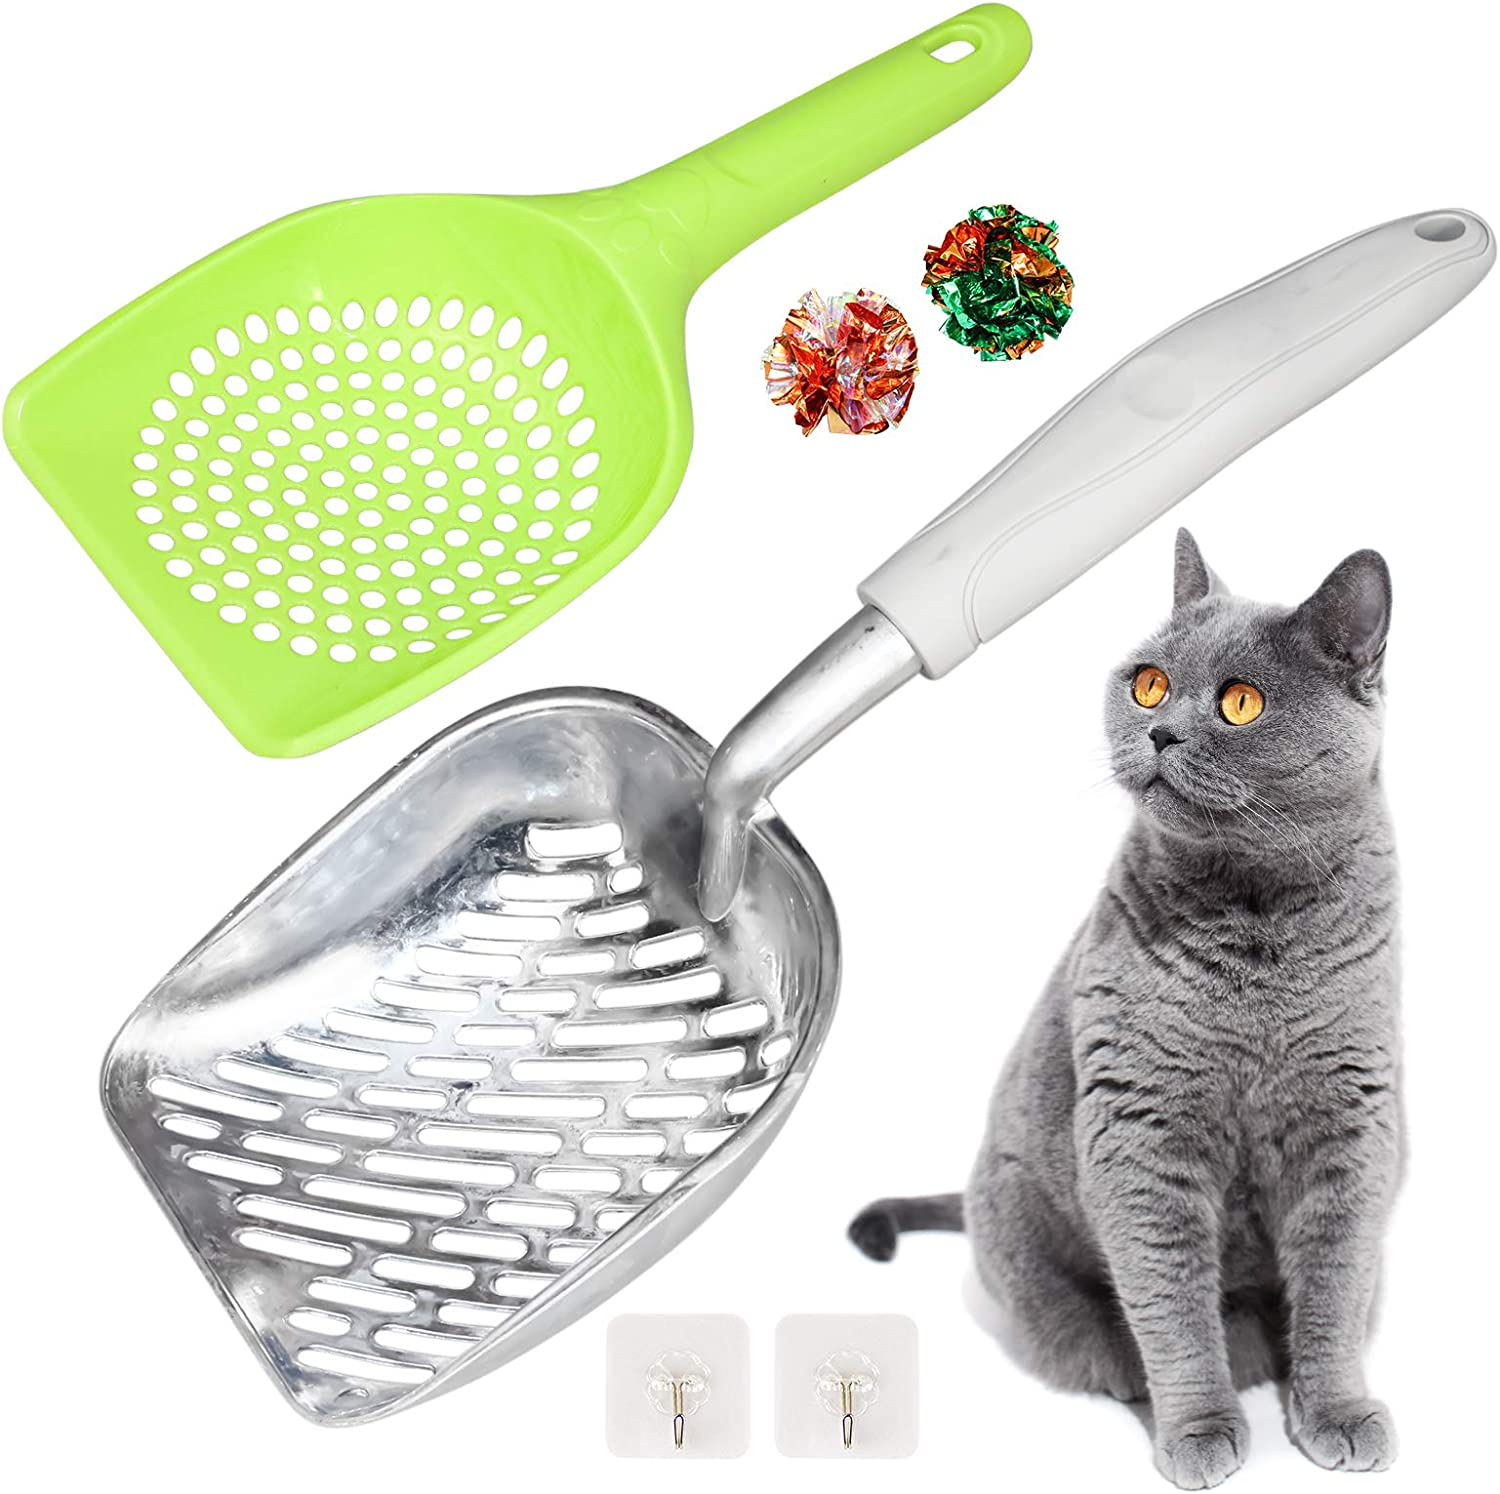 Cat Litter Scoop Kitty Metal 2021new shipping free shipping Scooper Silicone Handle Alumin Topics on TV Long